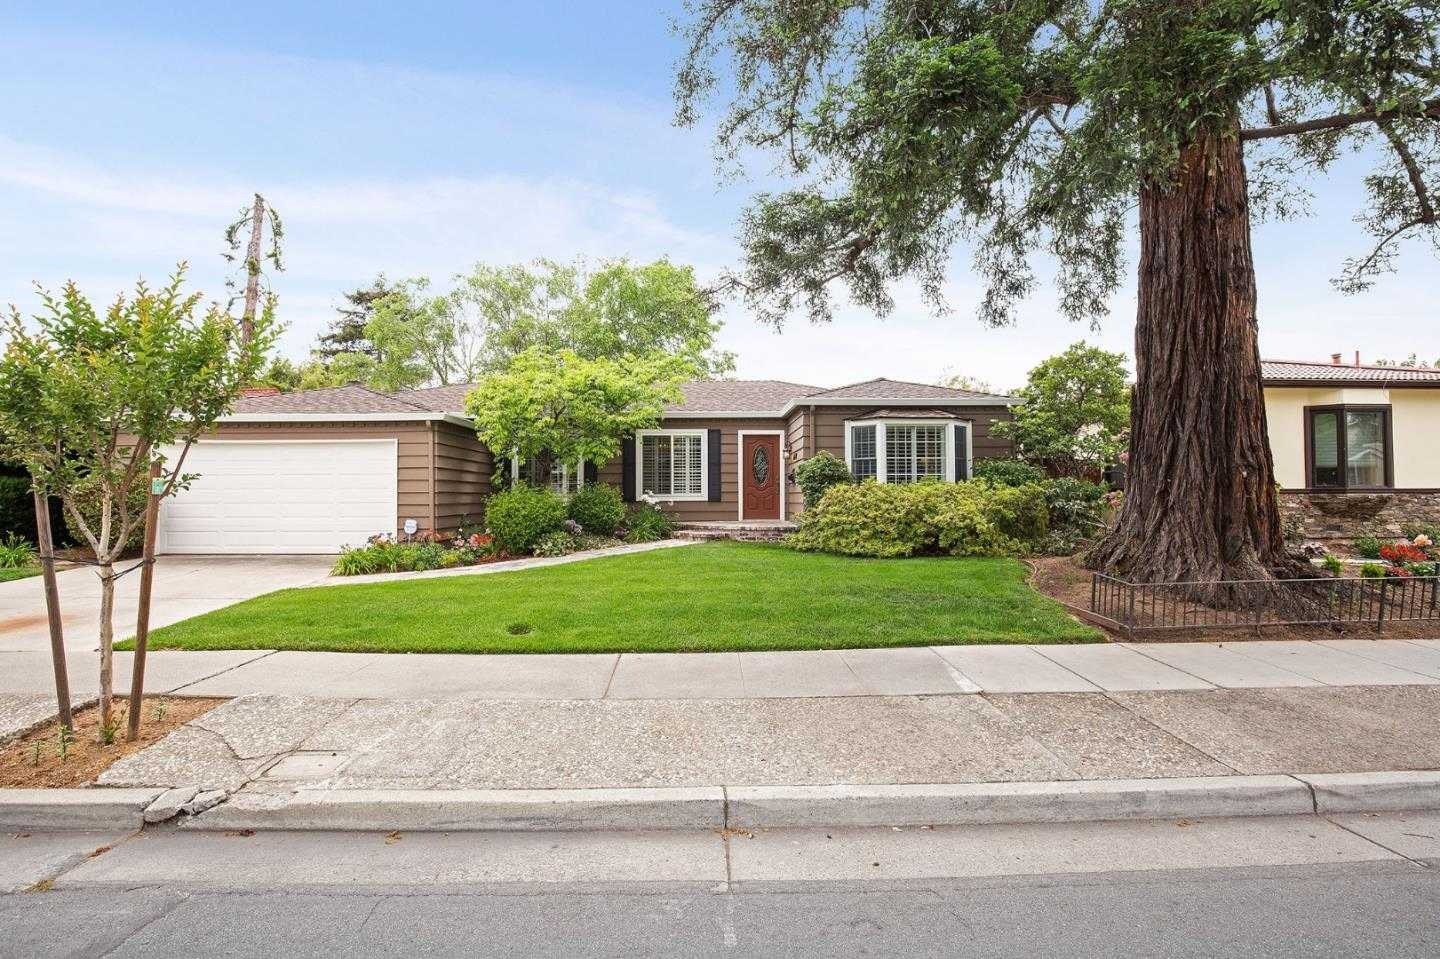 $2,588,888 - 4Br/2Ba -  for Sale in Cupertino